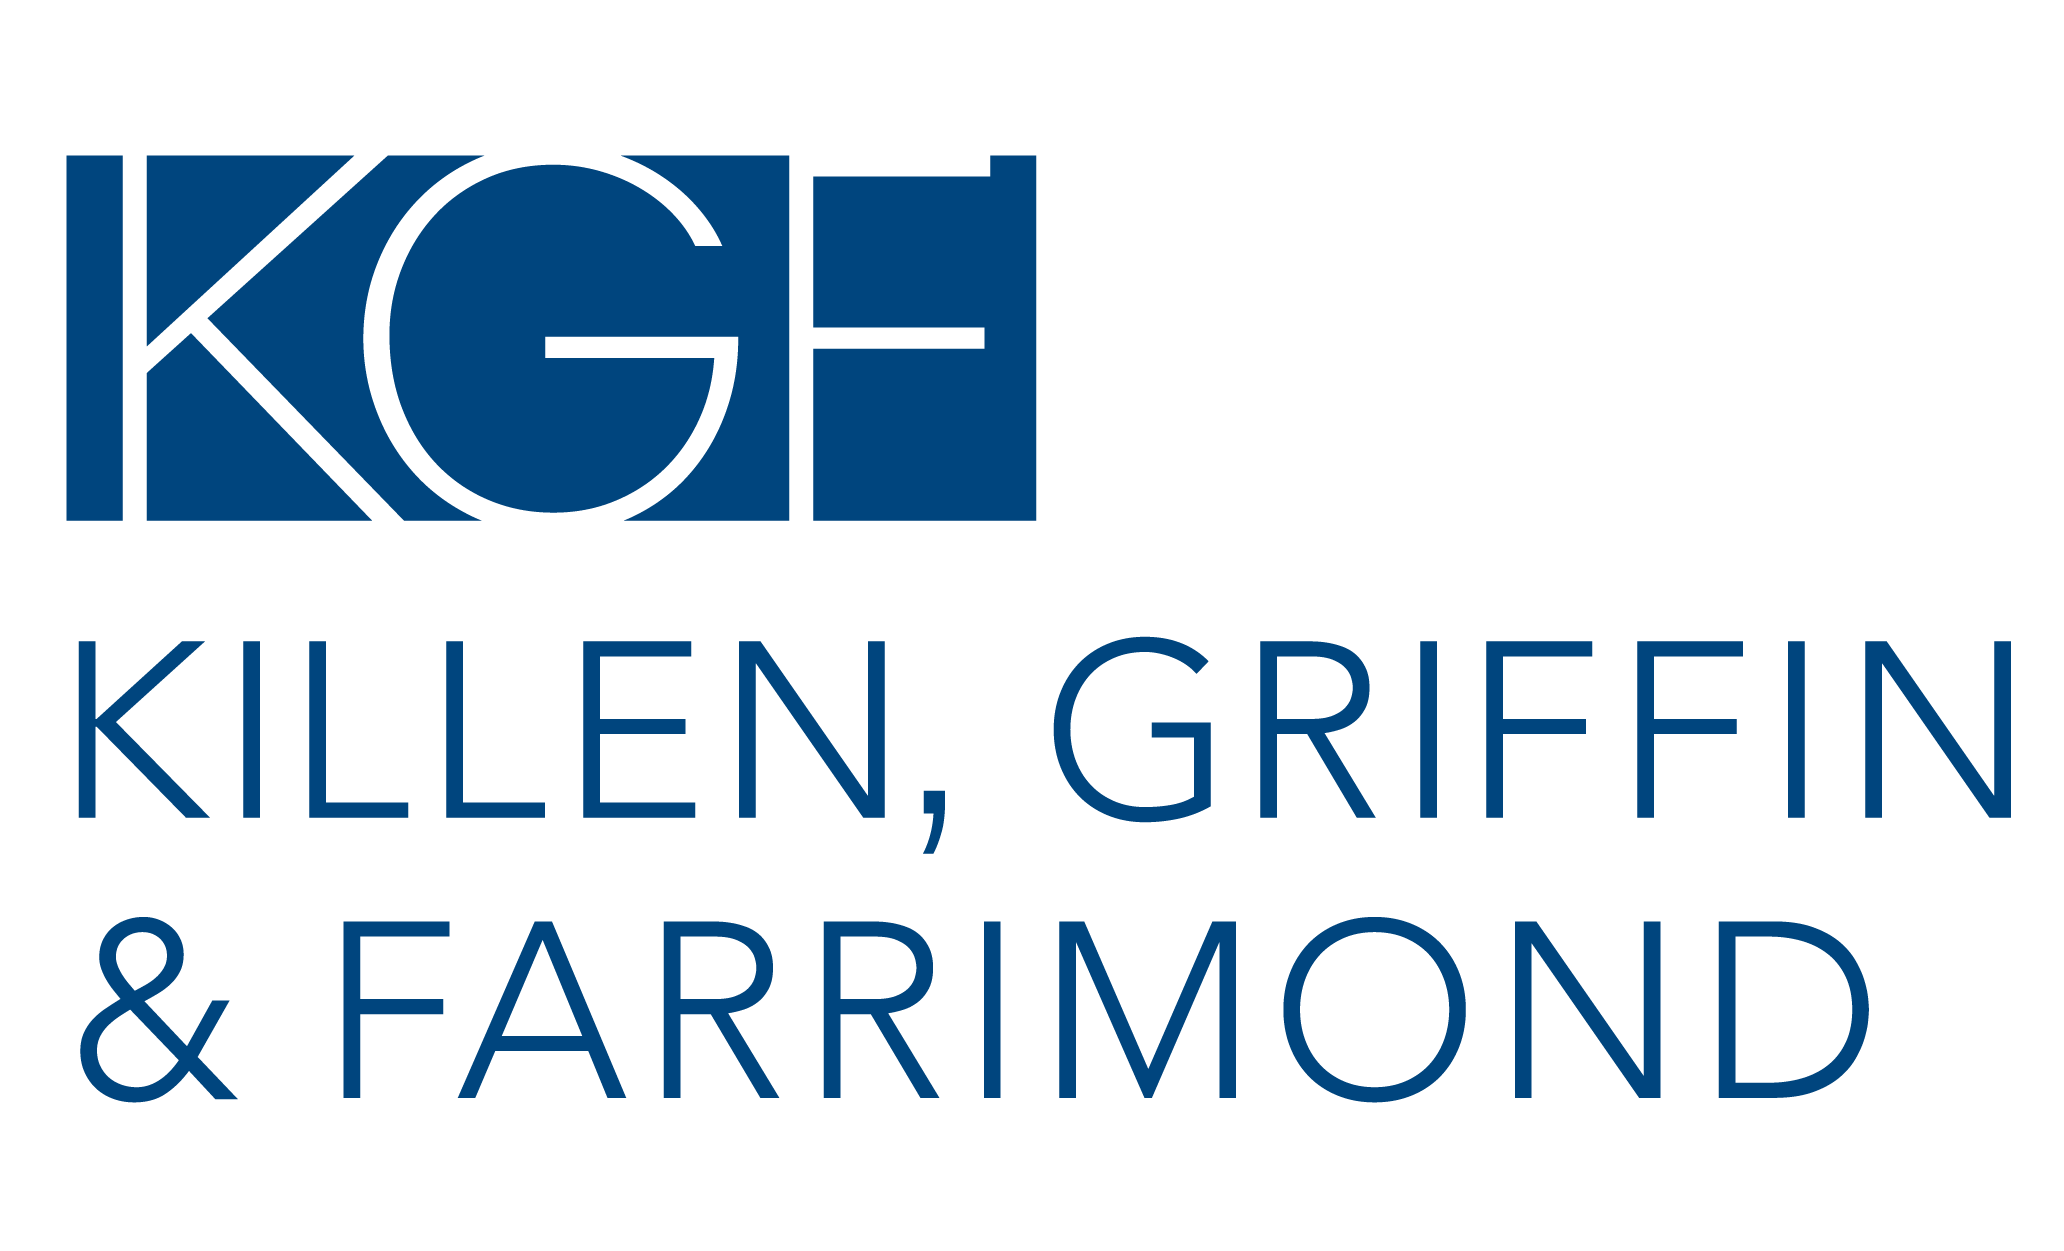 Killen, Griffin & Farrimond